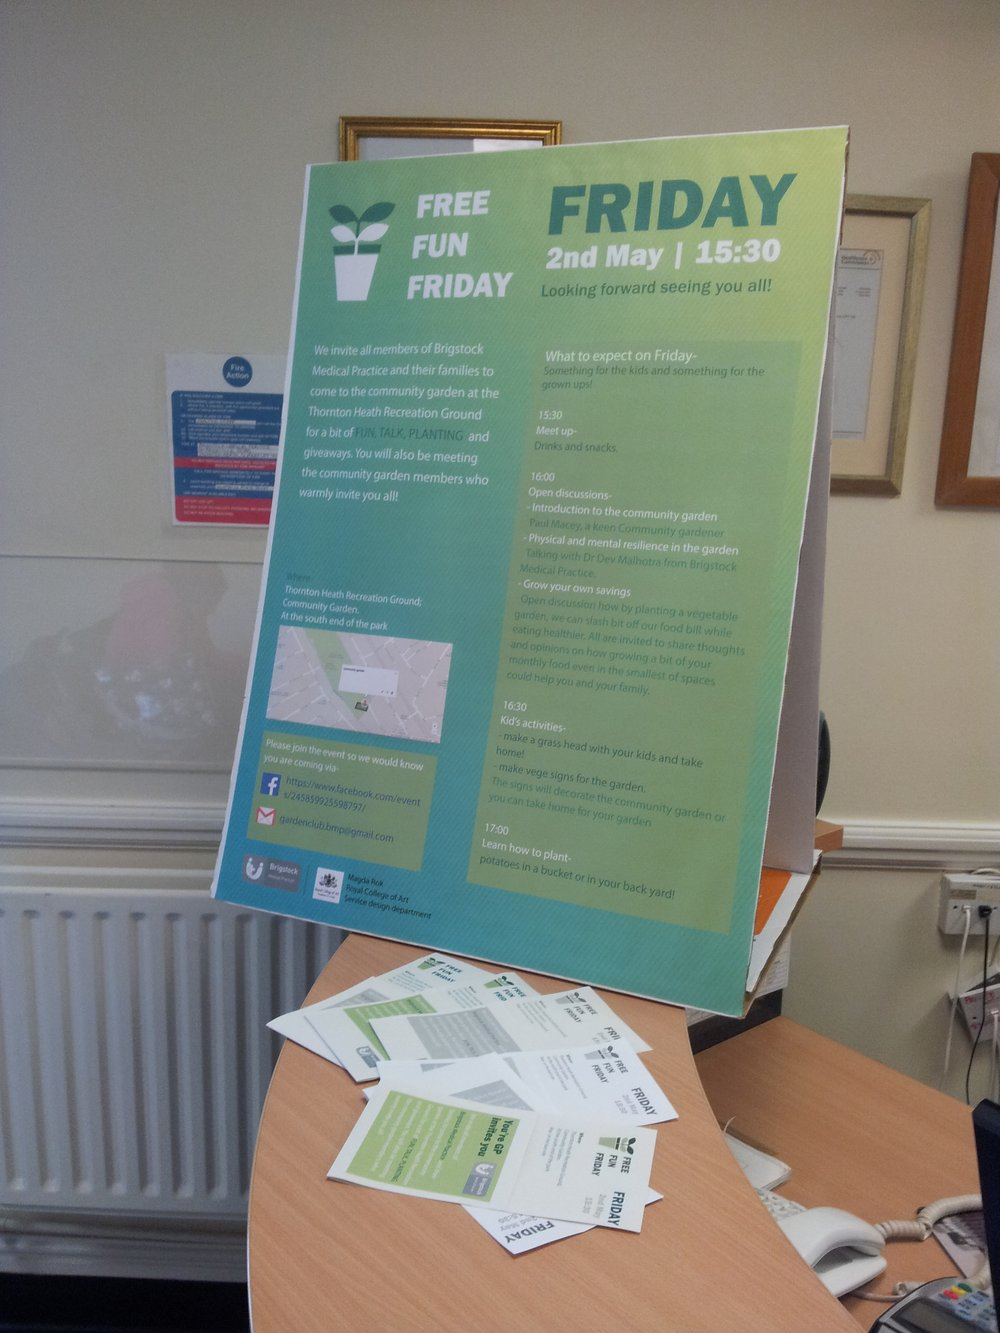 inviting patients to the a FREE FUN FRIDAY event at the community garden